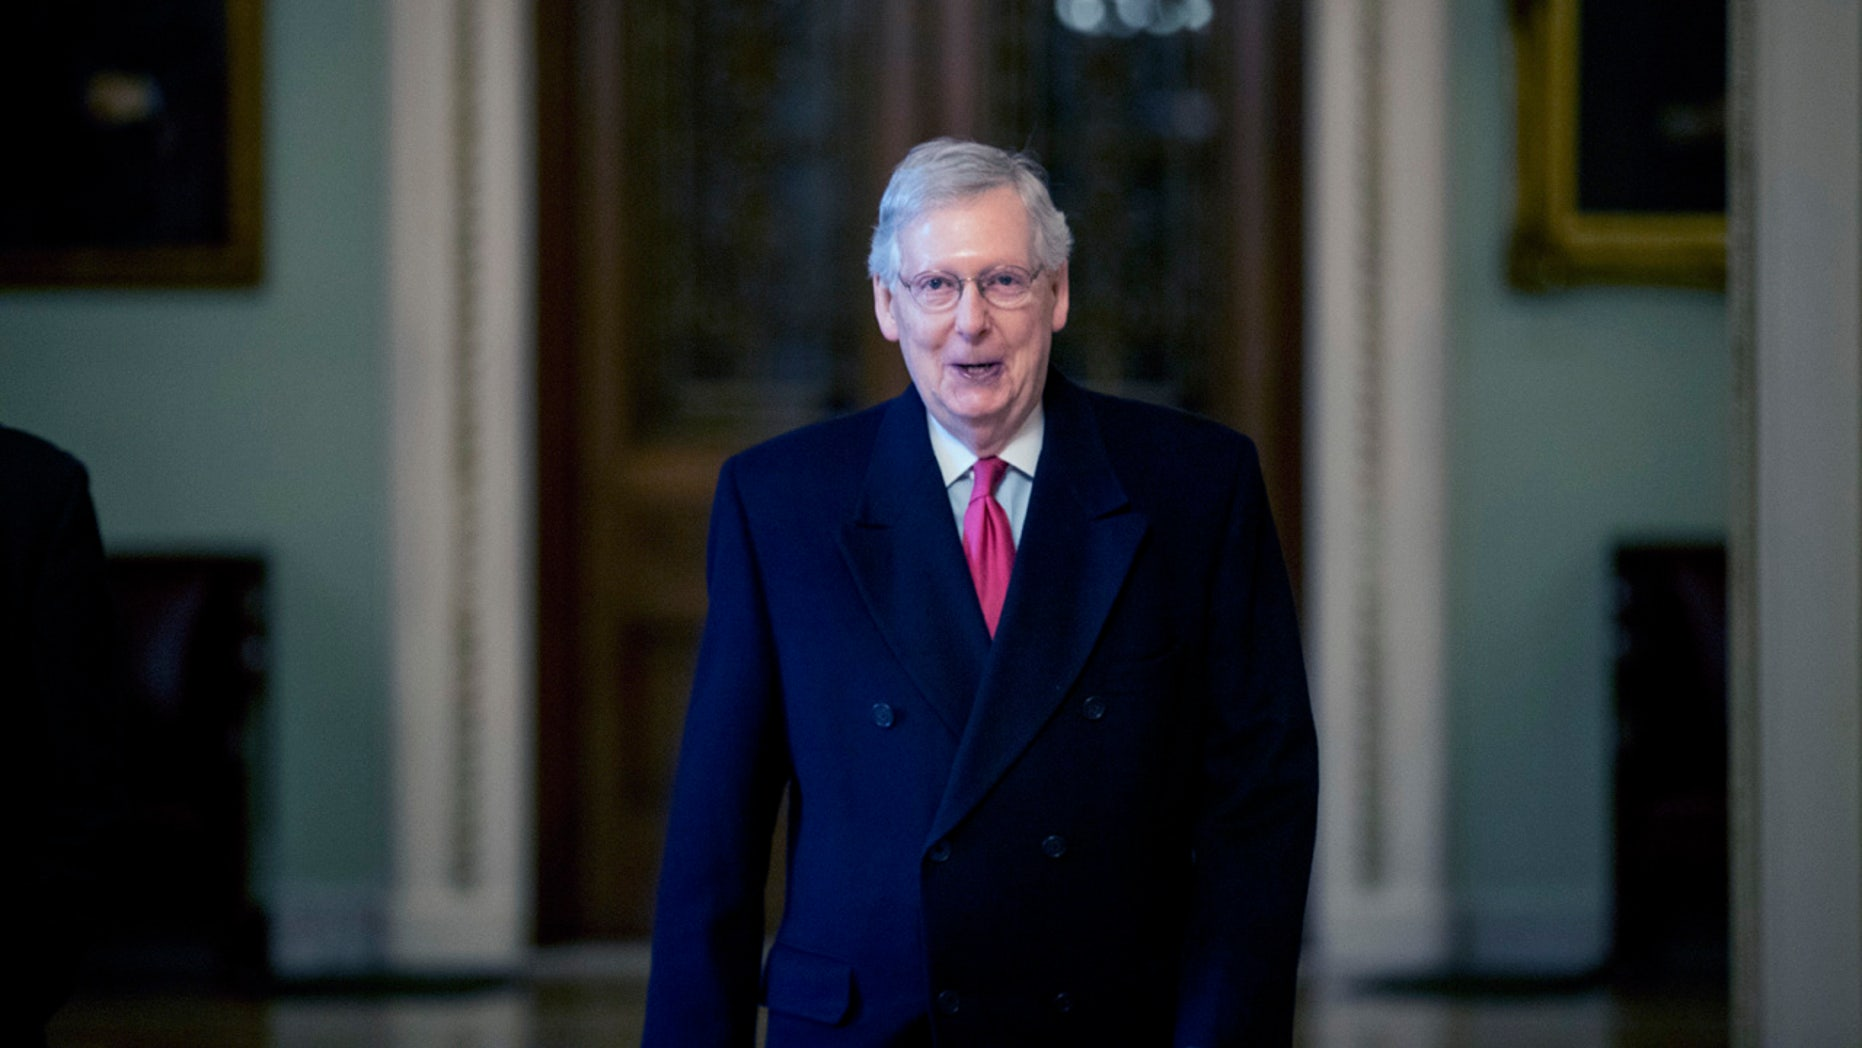 In this Jan. 3, 2019, photo, Senate Majority Leader Mitch McConnell of Ky. arrives on Capitol Hill in Washington, as the 116th Congress begins. (AP Photo/Andrew Harnik)